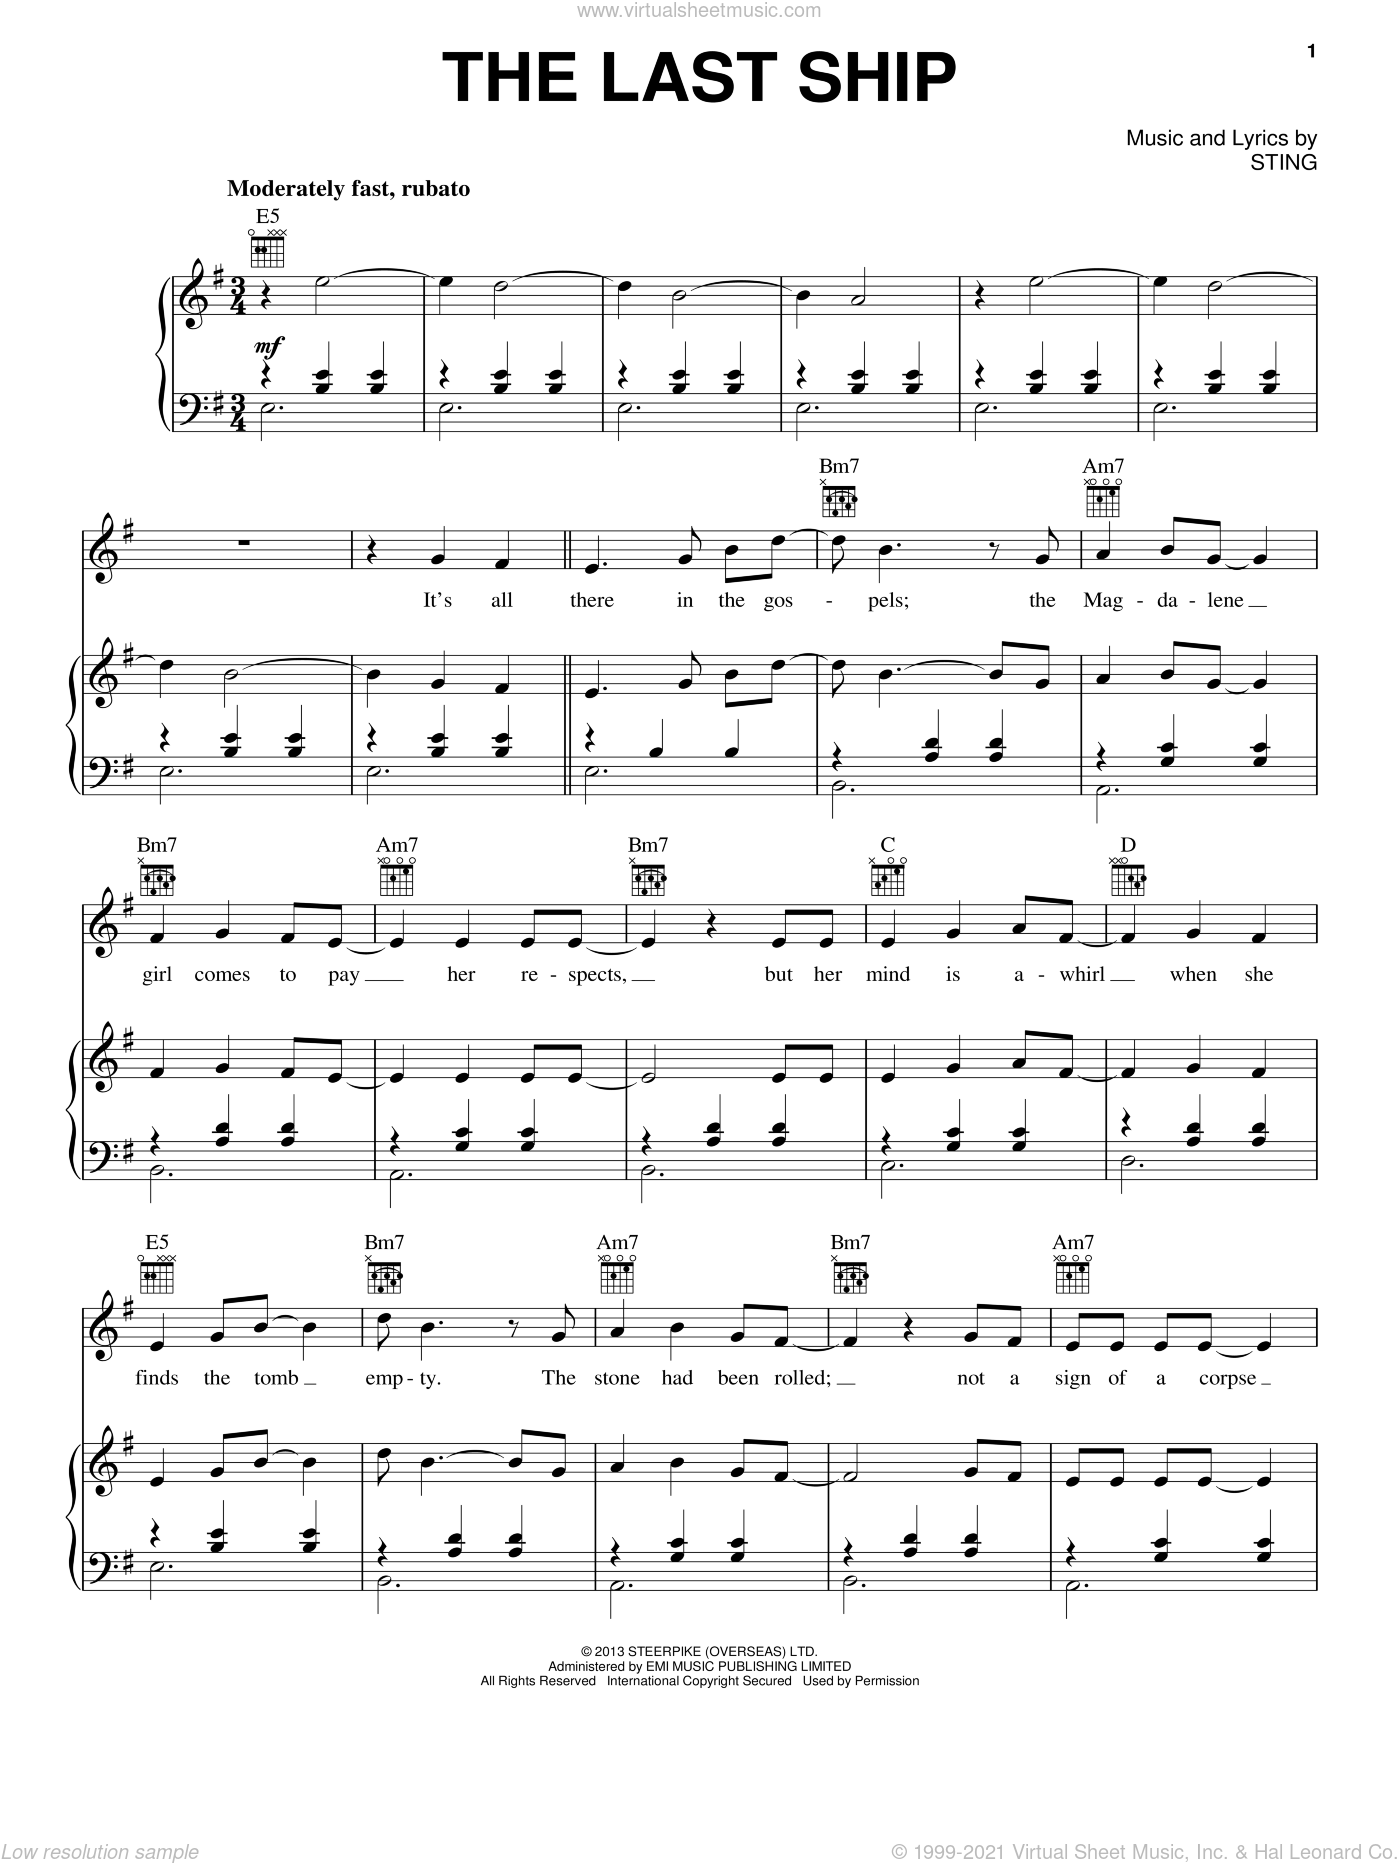 The Last Ship sheet music for voice, piano or guitar by Sting, intermediate skill level